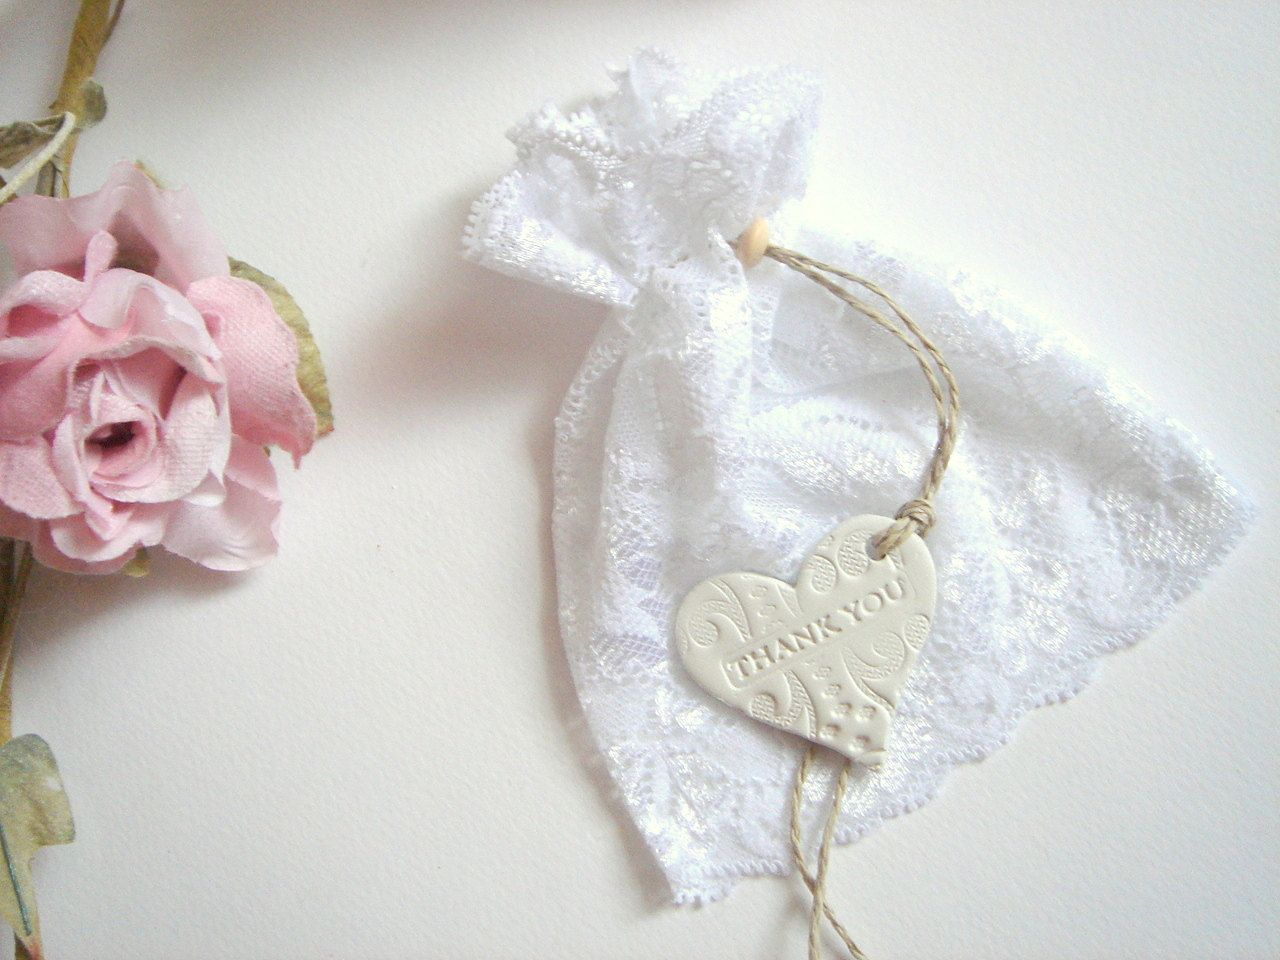 50 Wedding Favor Lace Bags With Clay Tags Thank You Shower Candy